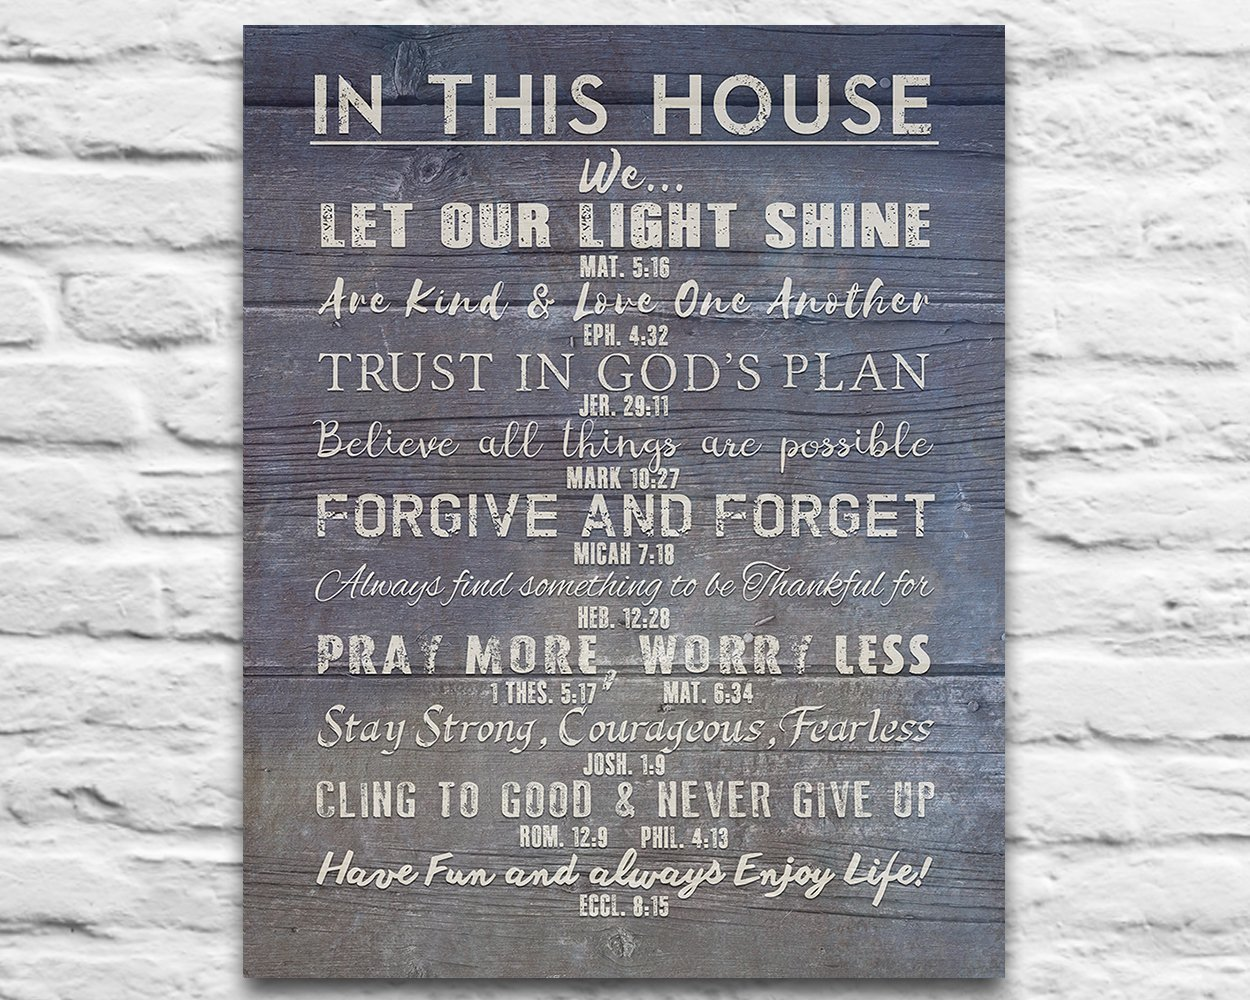 In This House Photo Print - Christian Bible Verse Family Rules ART, Scripture inspirational wall & home decor poster UNFRAMED poster, Housewarming gift, 8x10 inches by Art for the Masses